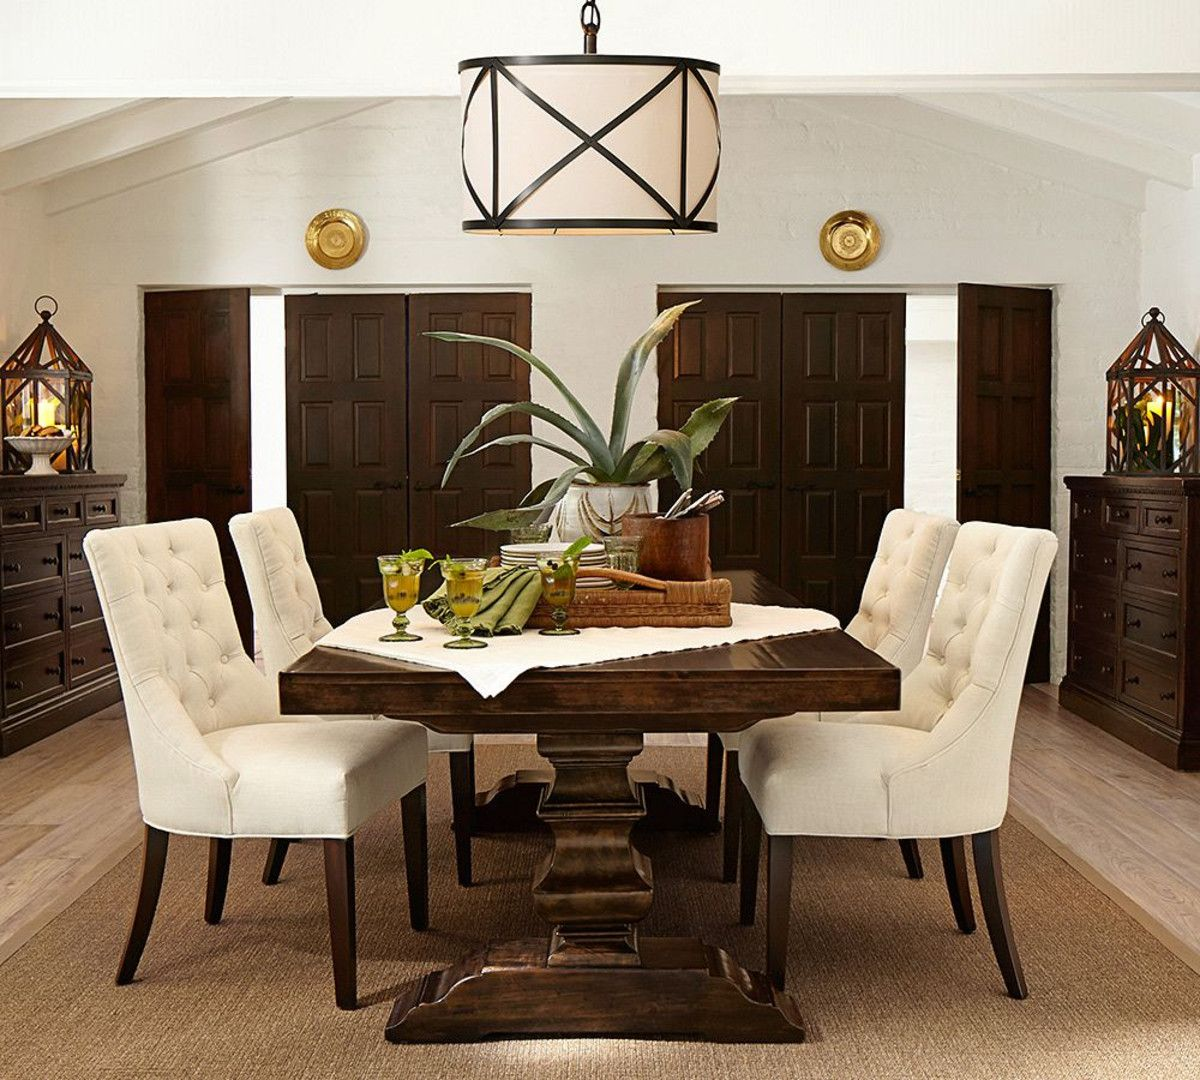 Banks Extending Dining Table Alfresco Brown 234 325 Cm Dining Room Inspiration Pottery Barn Dining Room Farmhouse Dining